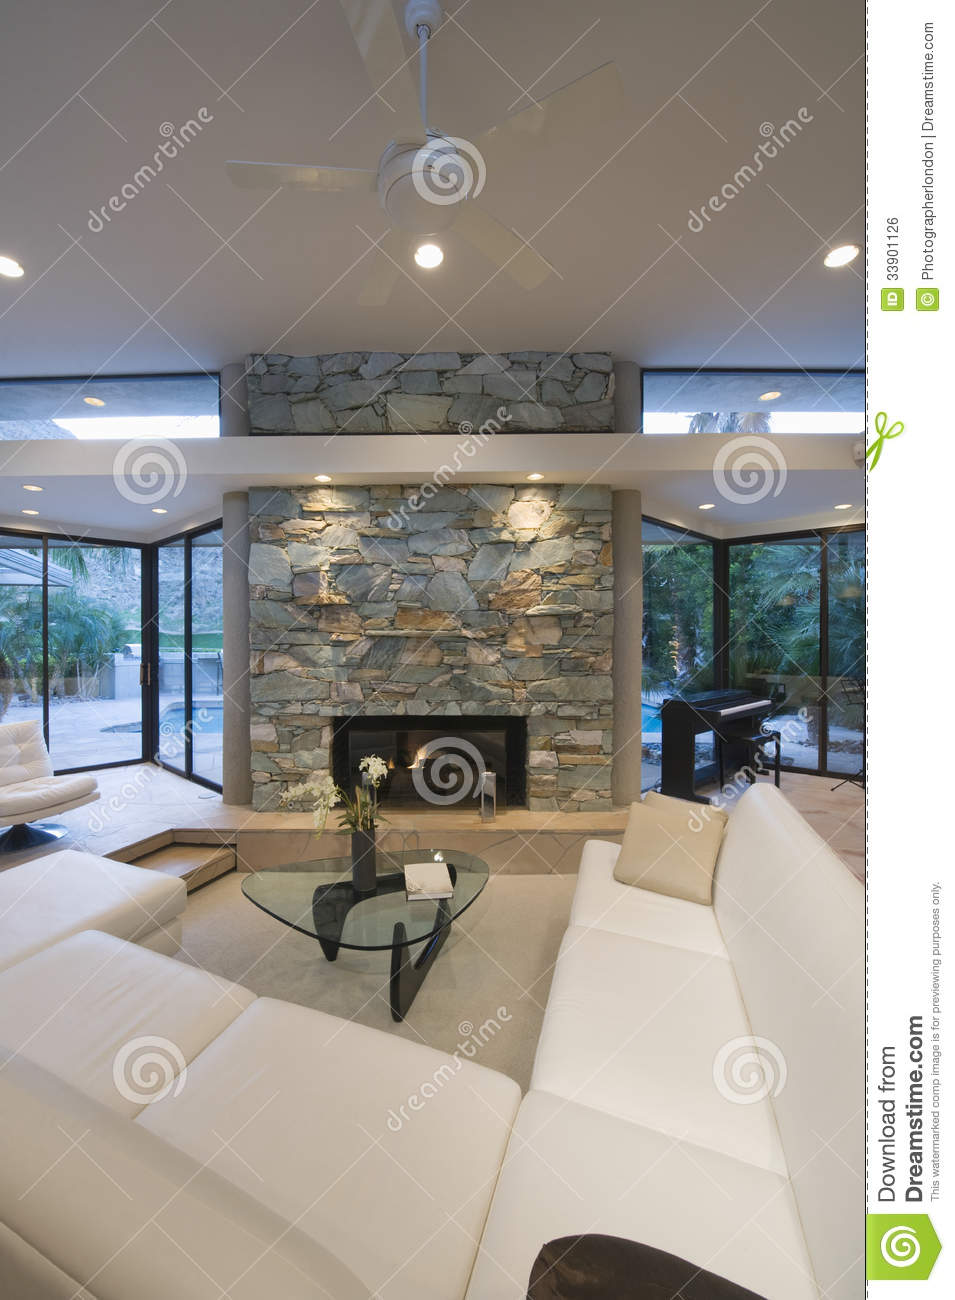 Seating Area And Stone Fireplace Royalty Free Stock Image Image 33901126